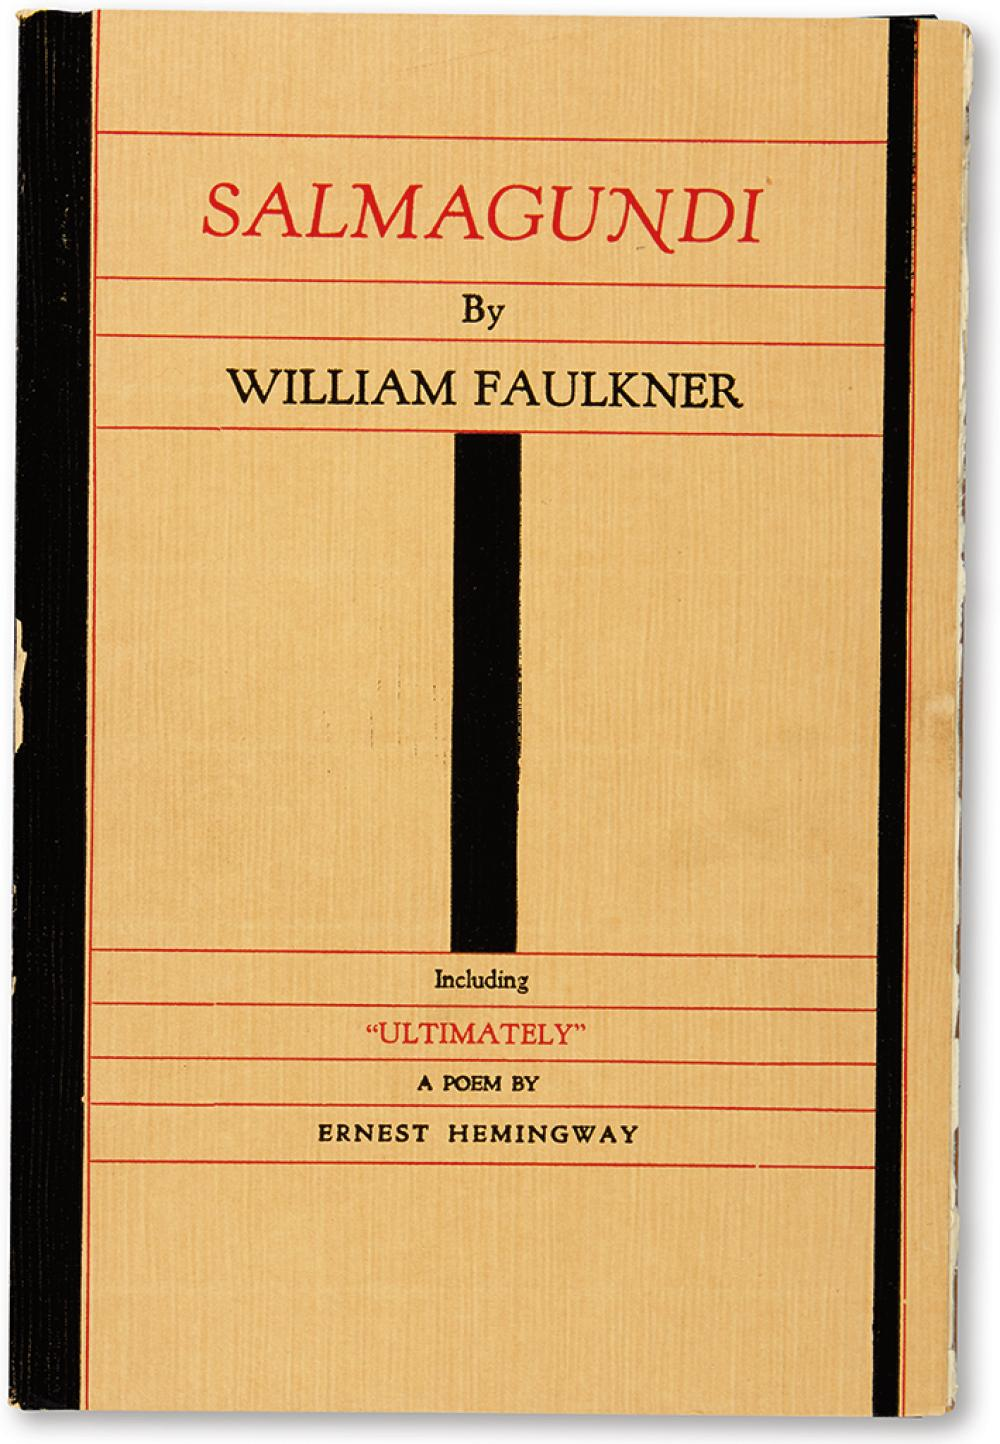 FAULKNER, WILLIAM. Salmagundi and a Poem by Ernest Hemingway.